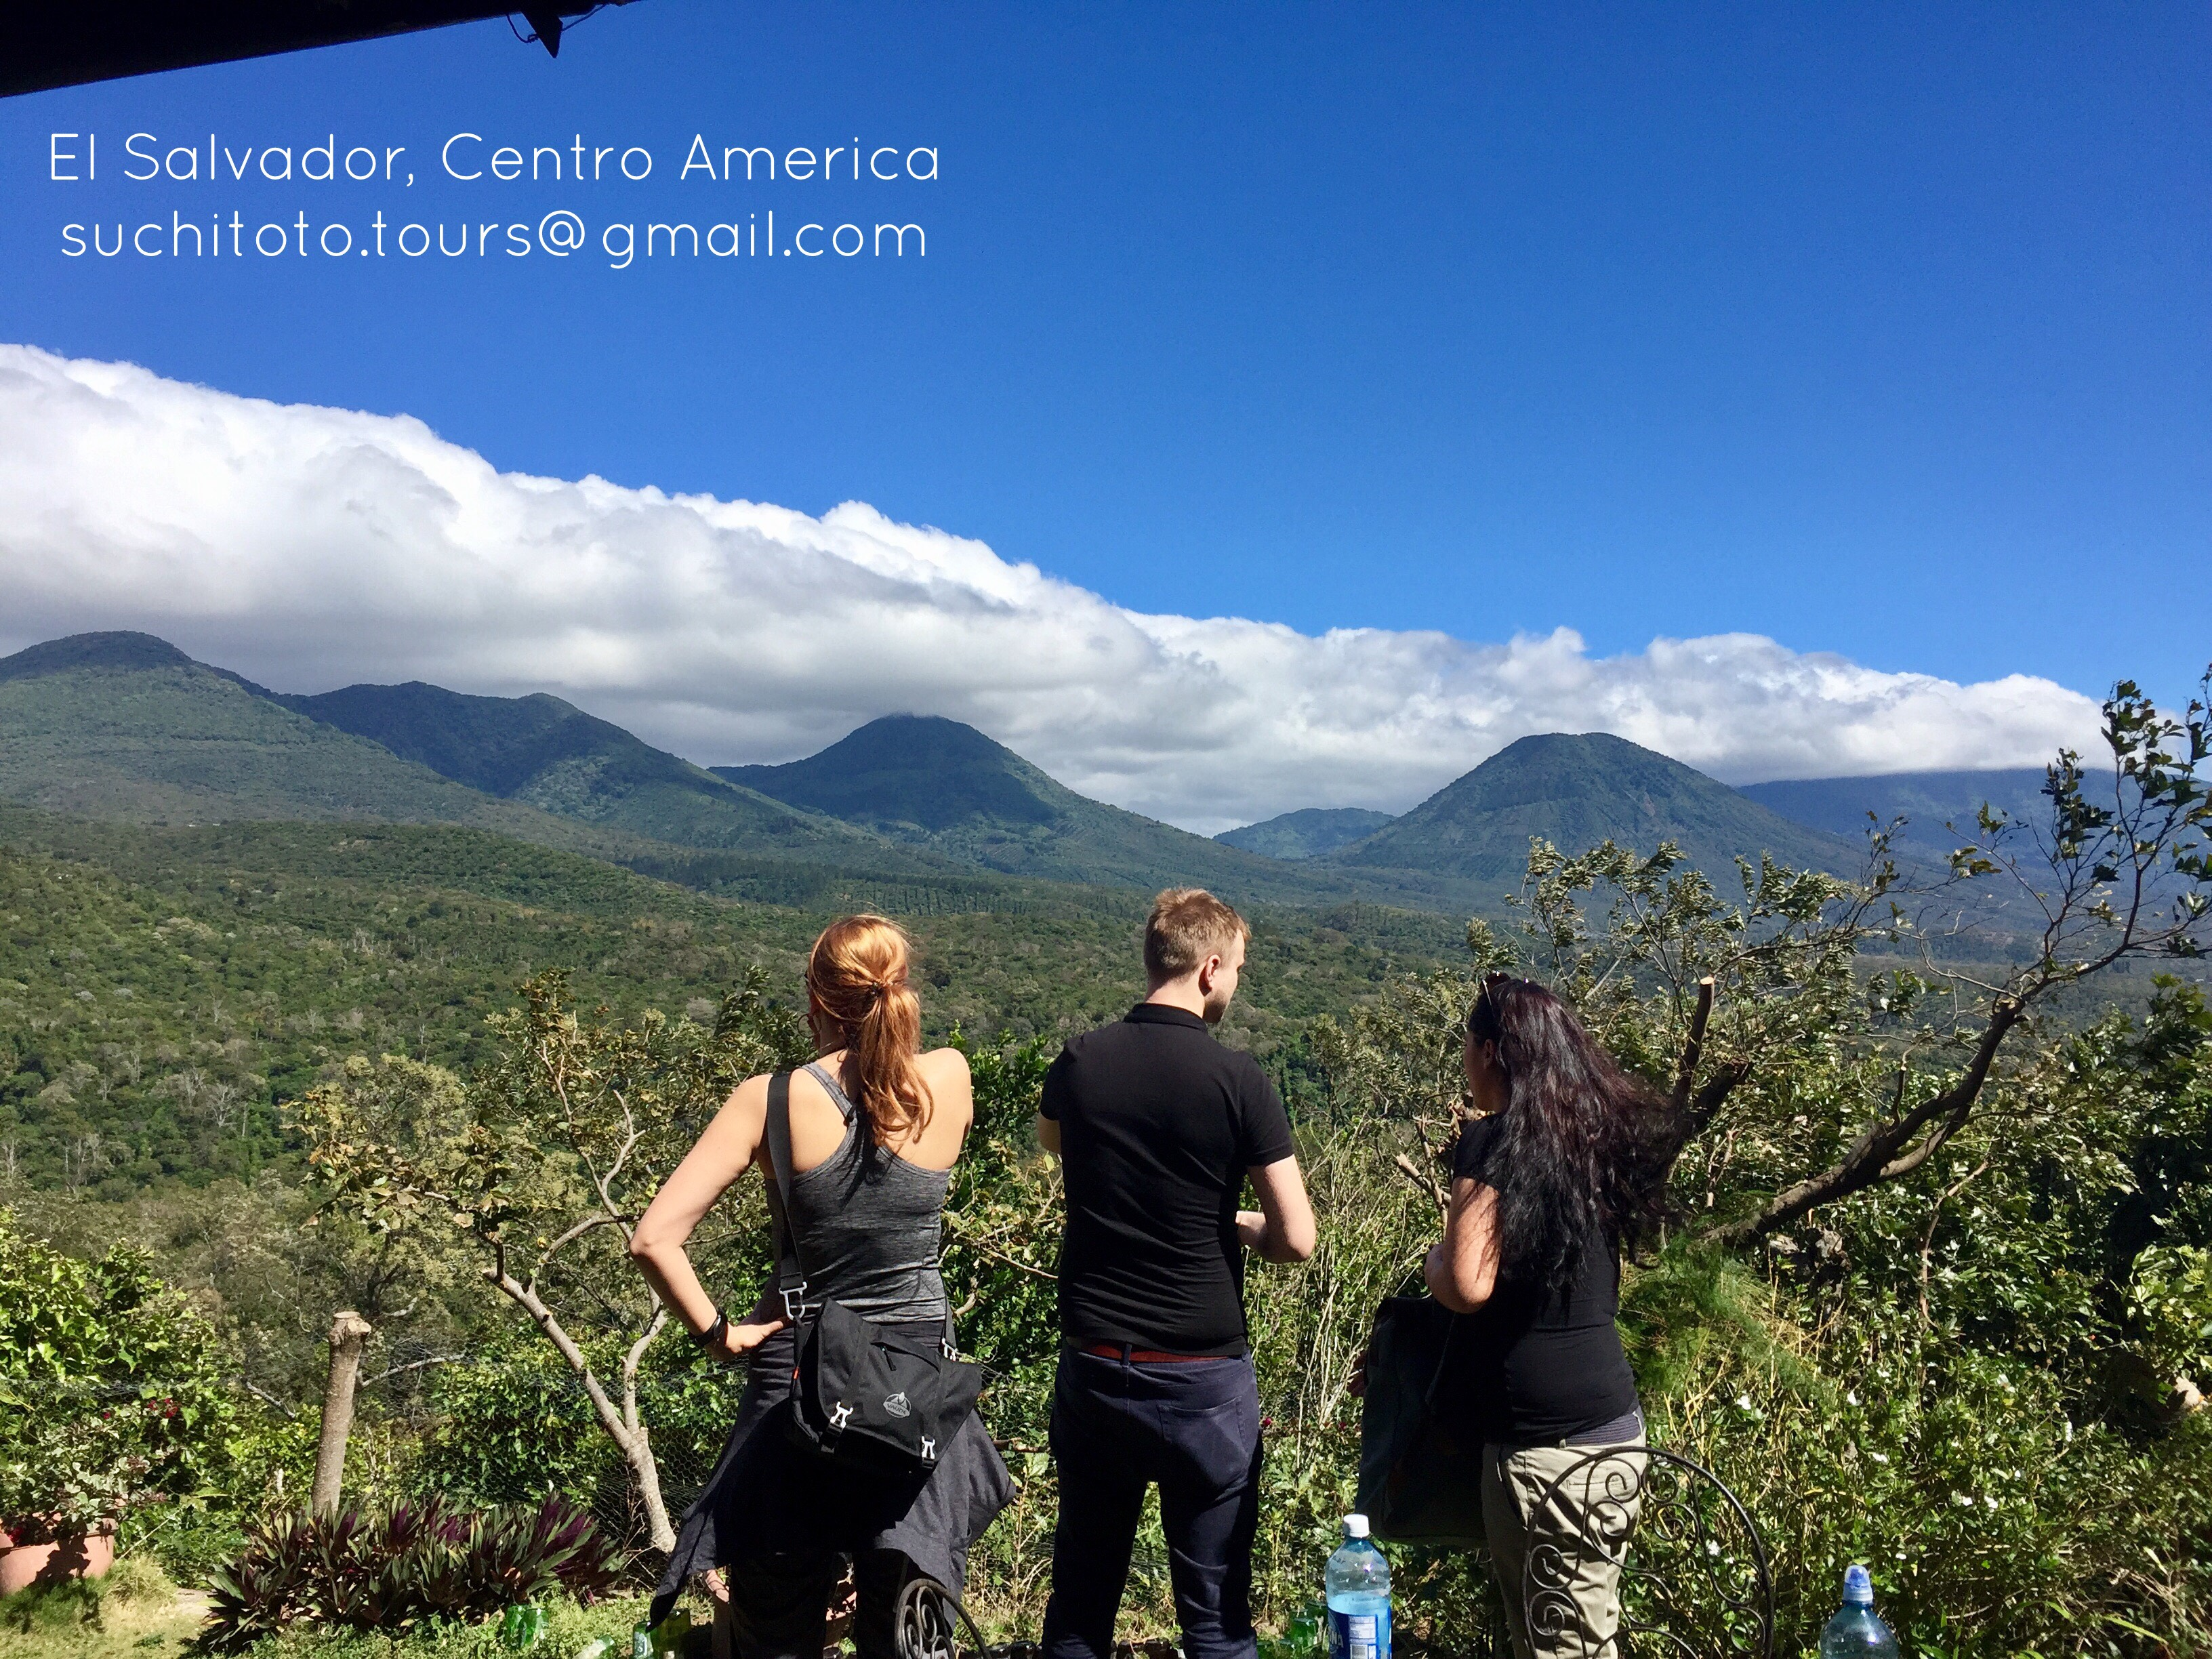 Impressive Mountain Range #ElSalvador #coffee #travelphoto #toursv